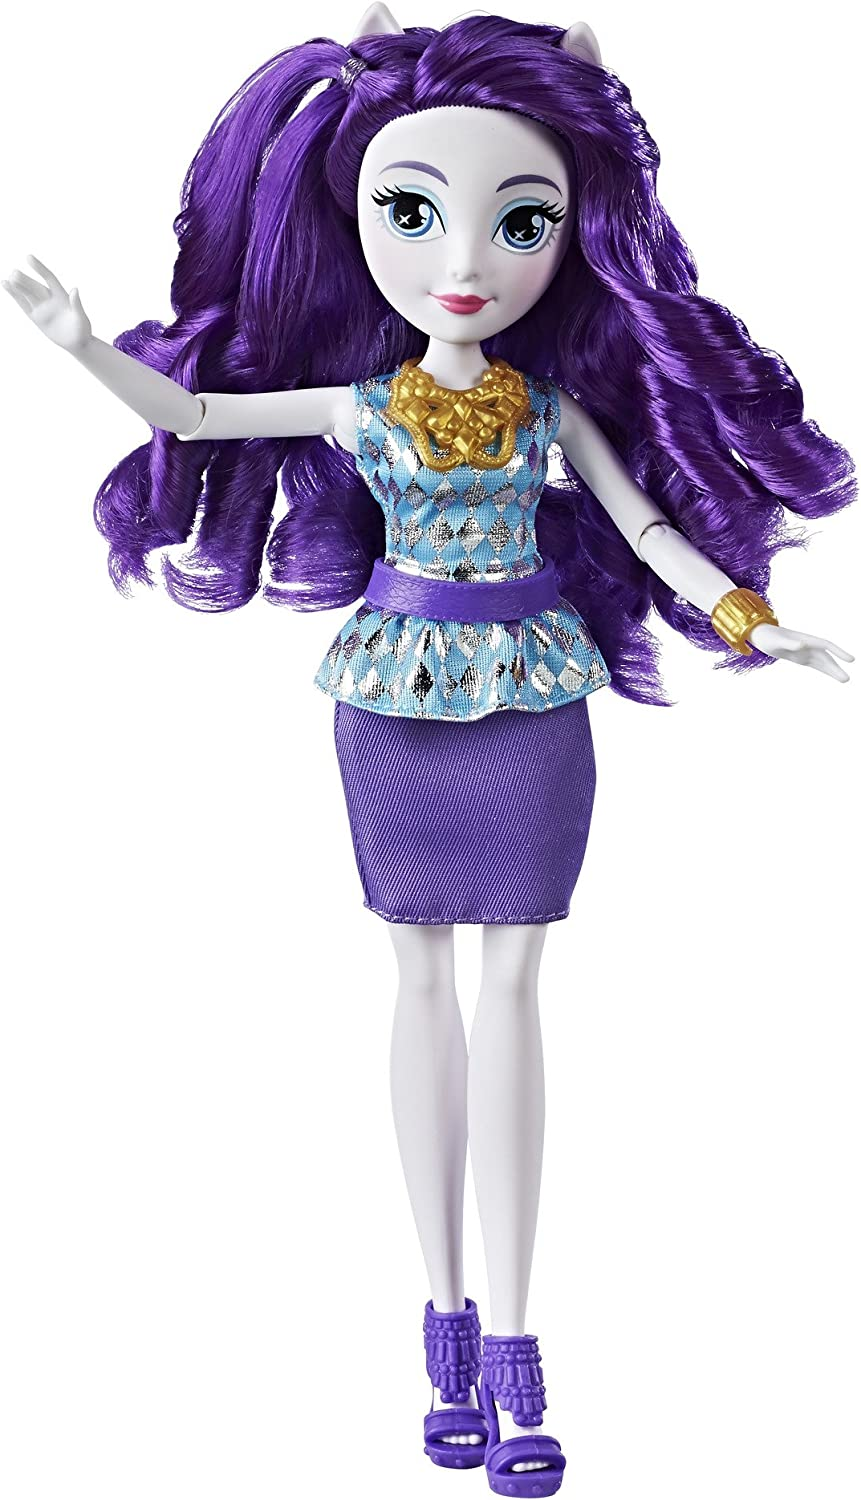 My Little Pony Equestria Girls Rarity Classic Style Doll Playsets Amazon Canada